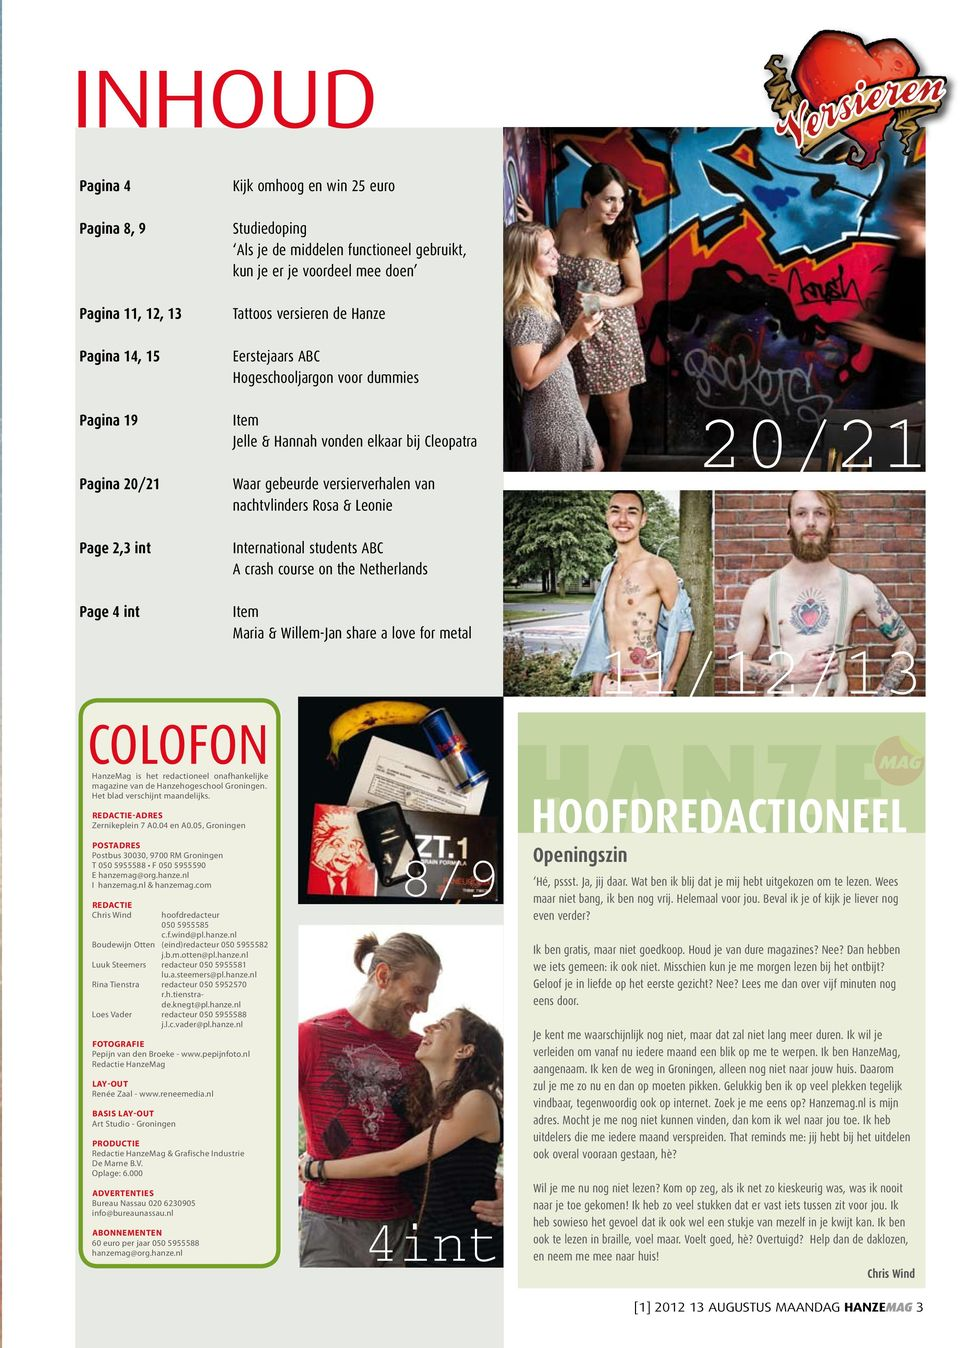 Leonie International students ABC A crash course on the Netherlands Item Maria & Willem-Jan share a love for metal 20/21 11/12/13 Colofon HanzeMag is het redactioneel onafhankelijke magazine van de